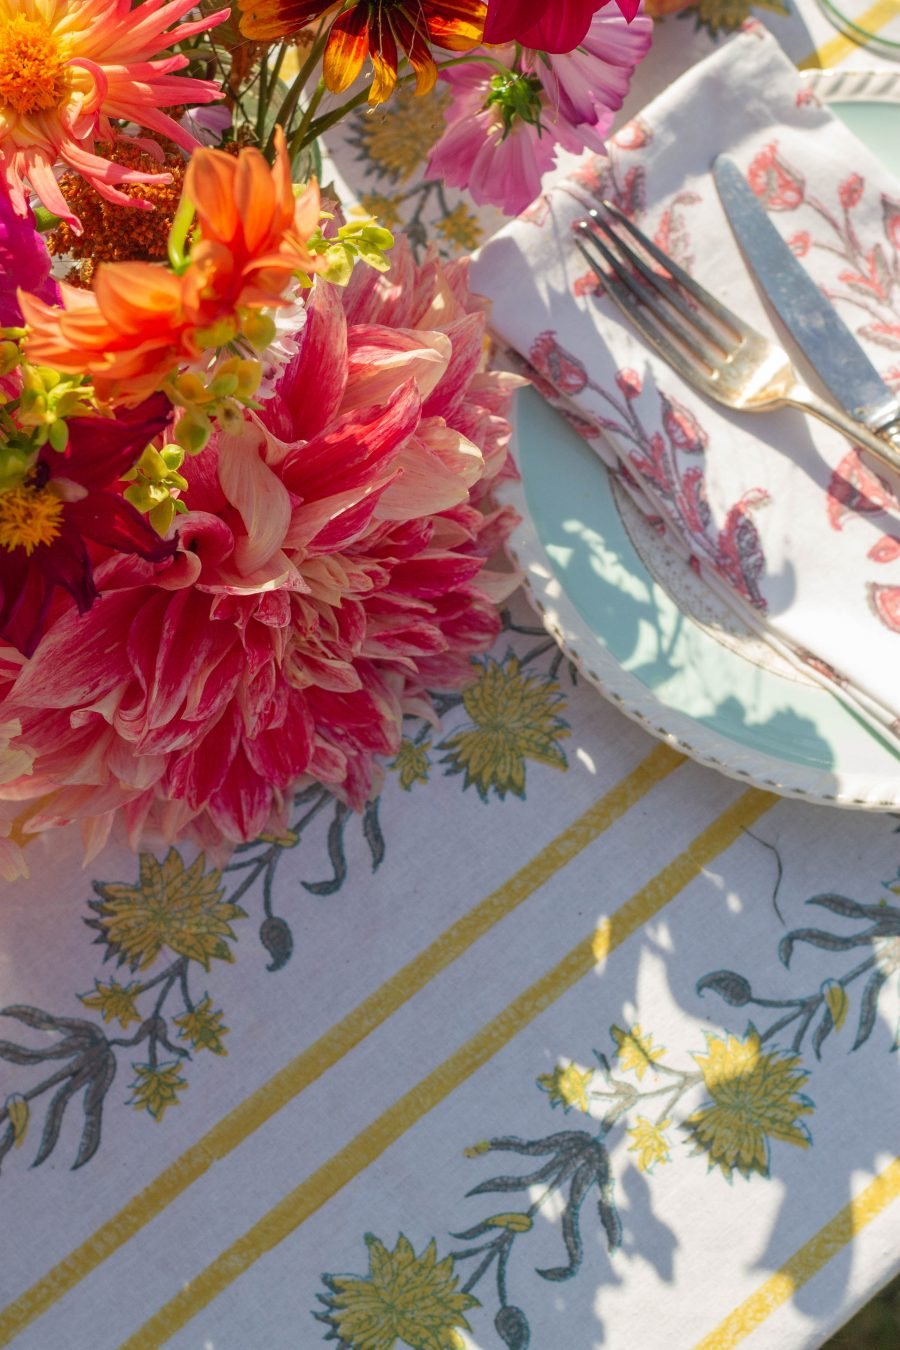 vintage plates and patterned table